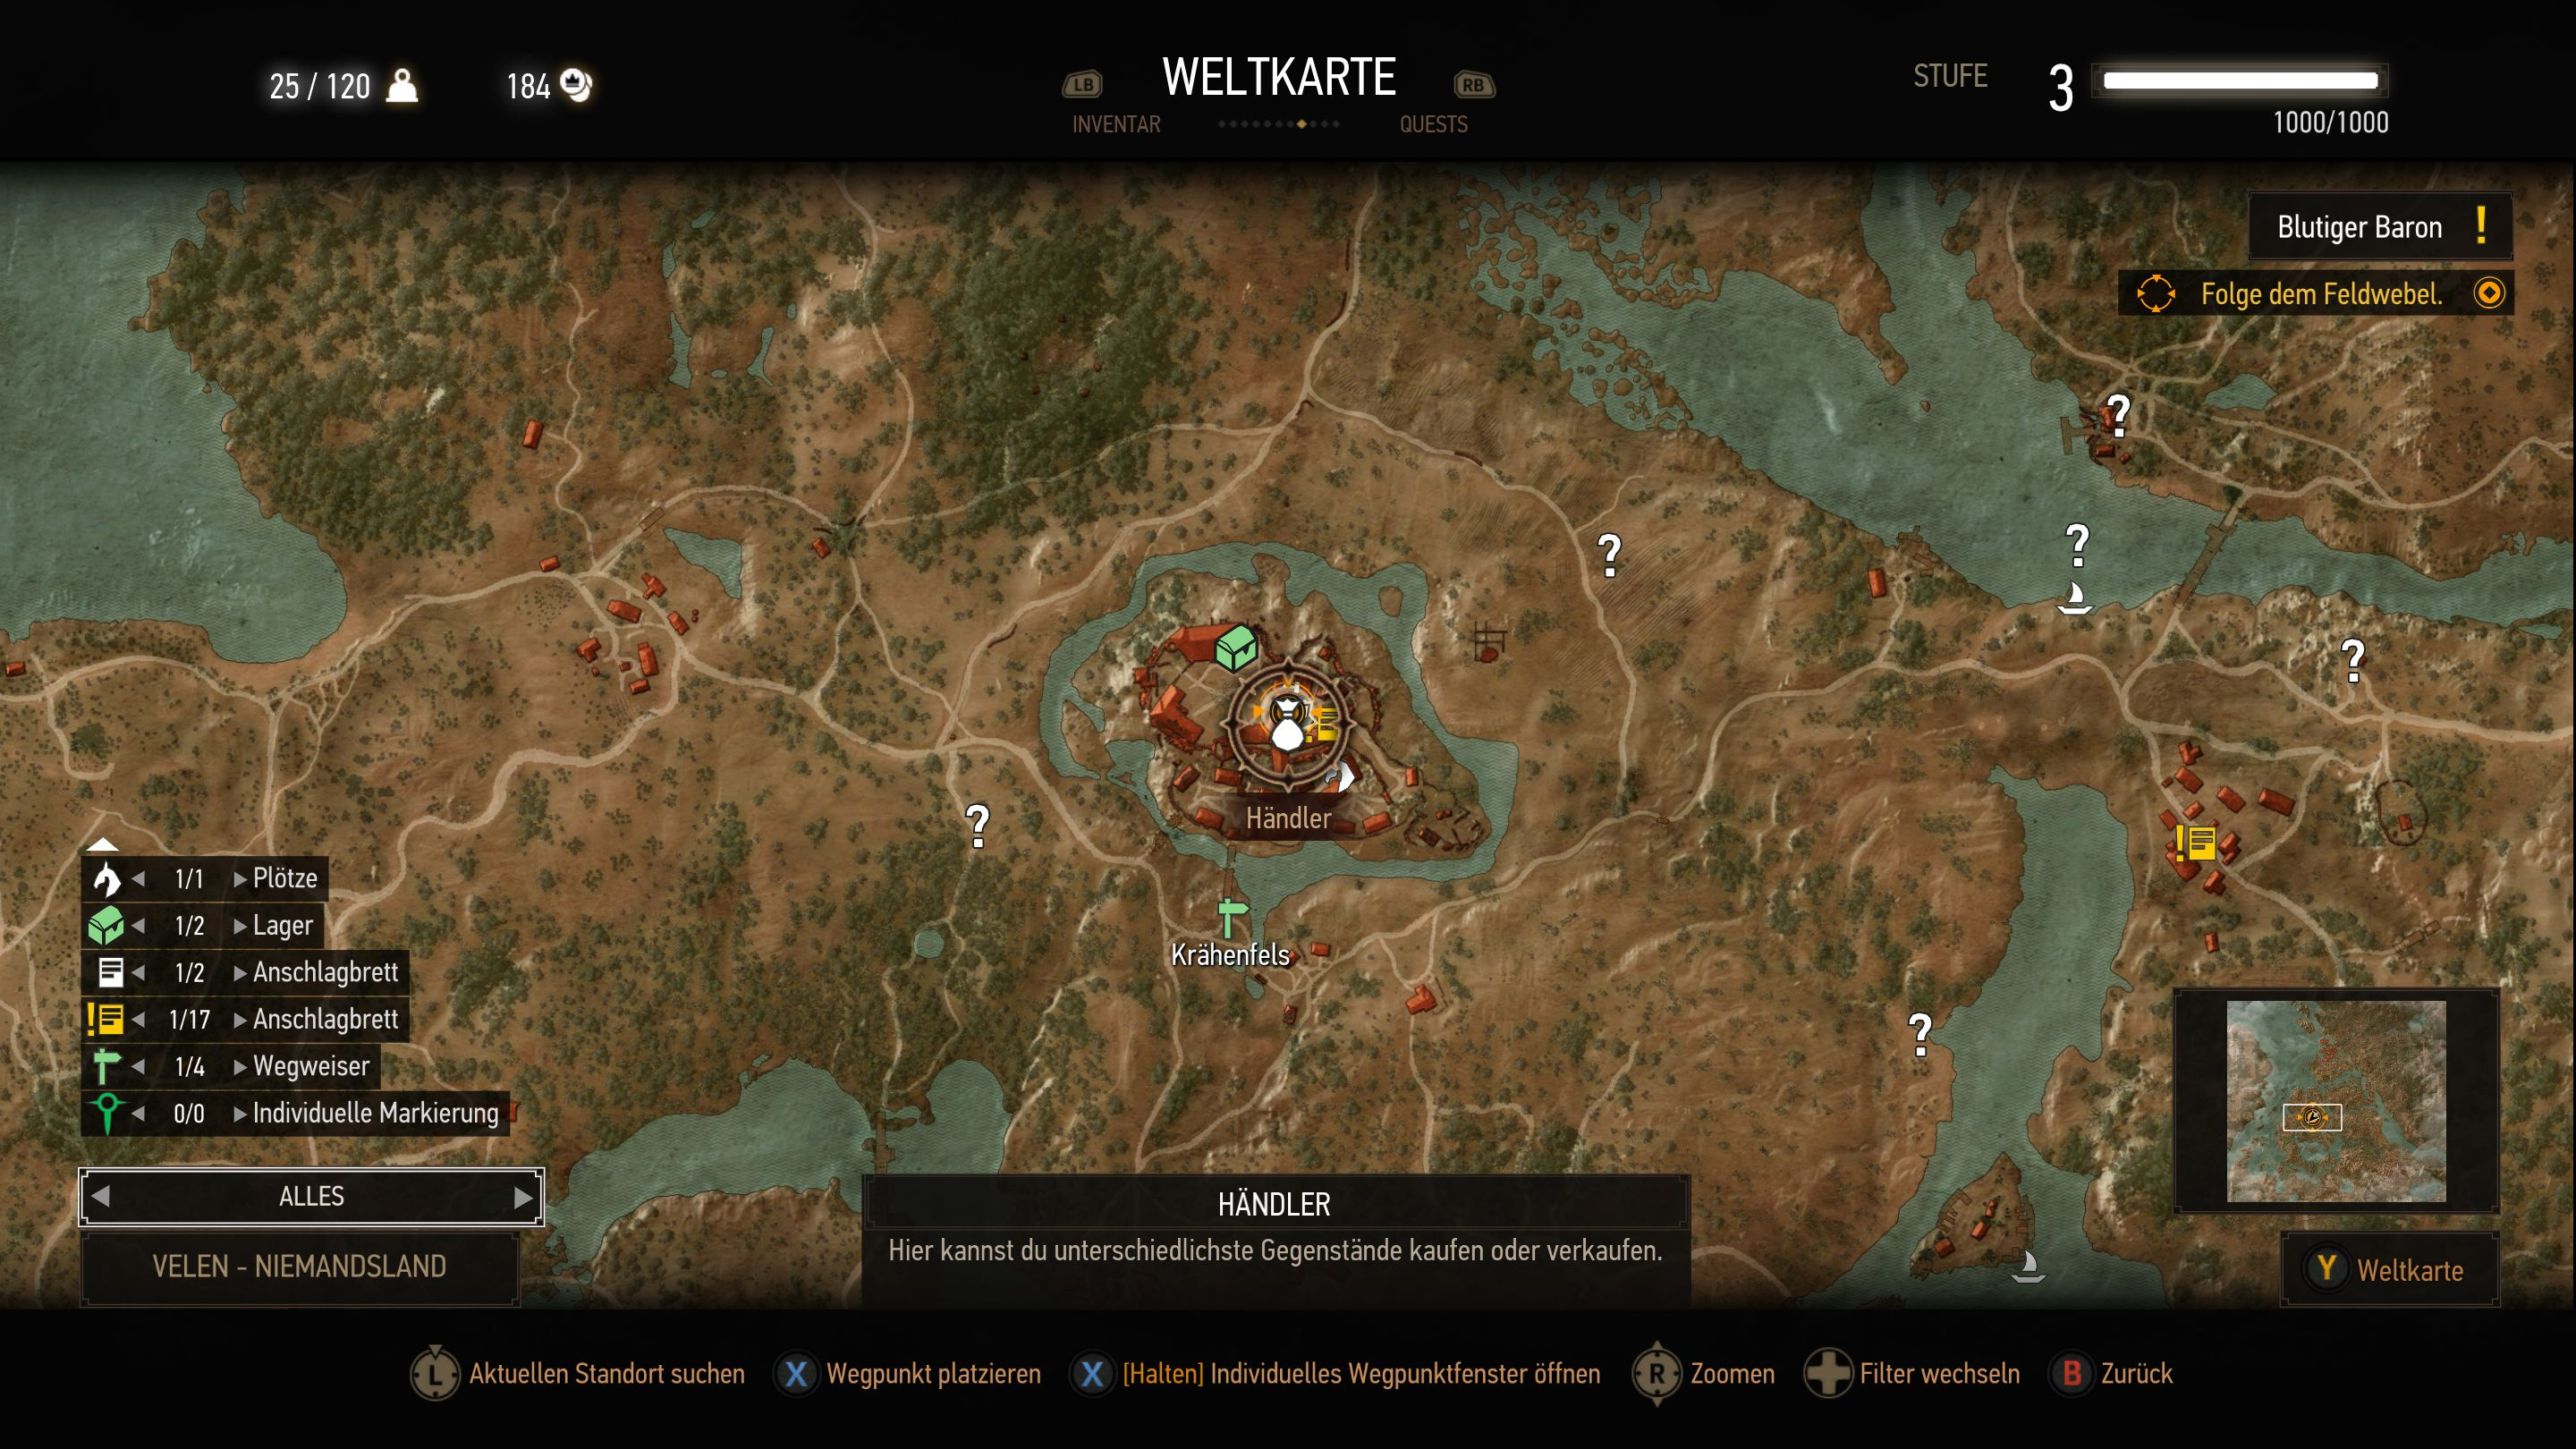 Gwent card locations the witcher 3 - Img 3 Loading